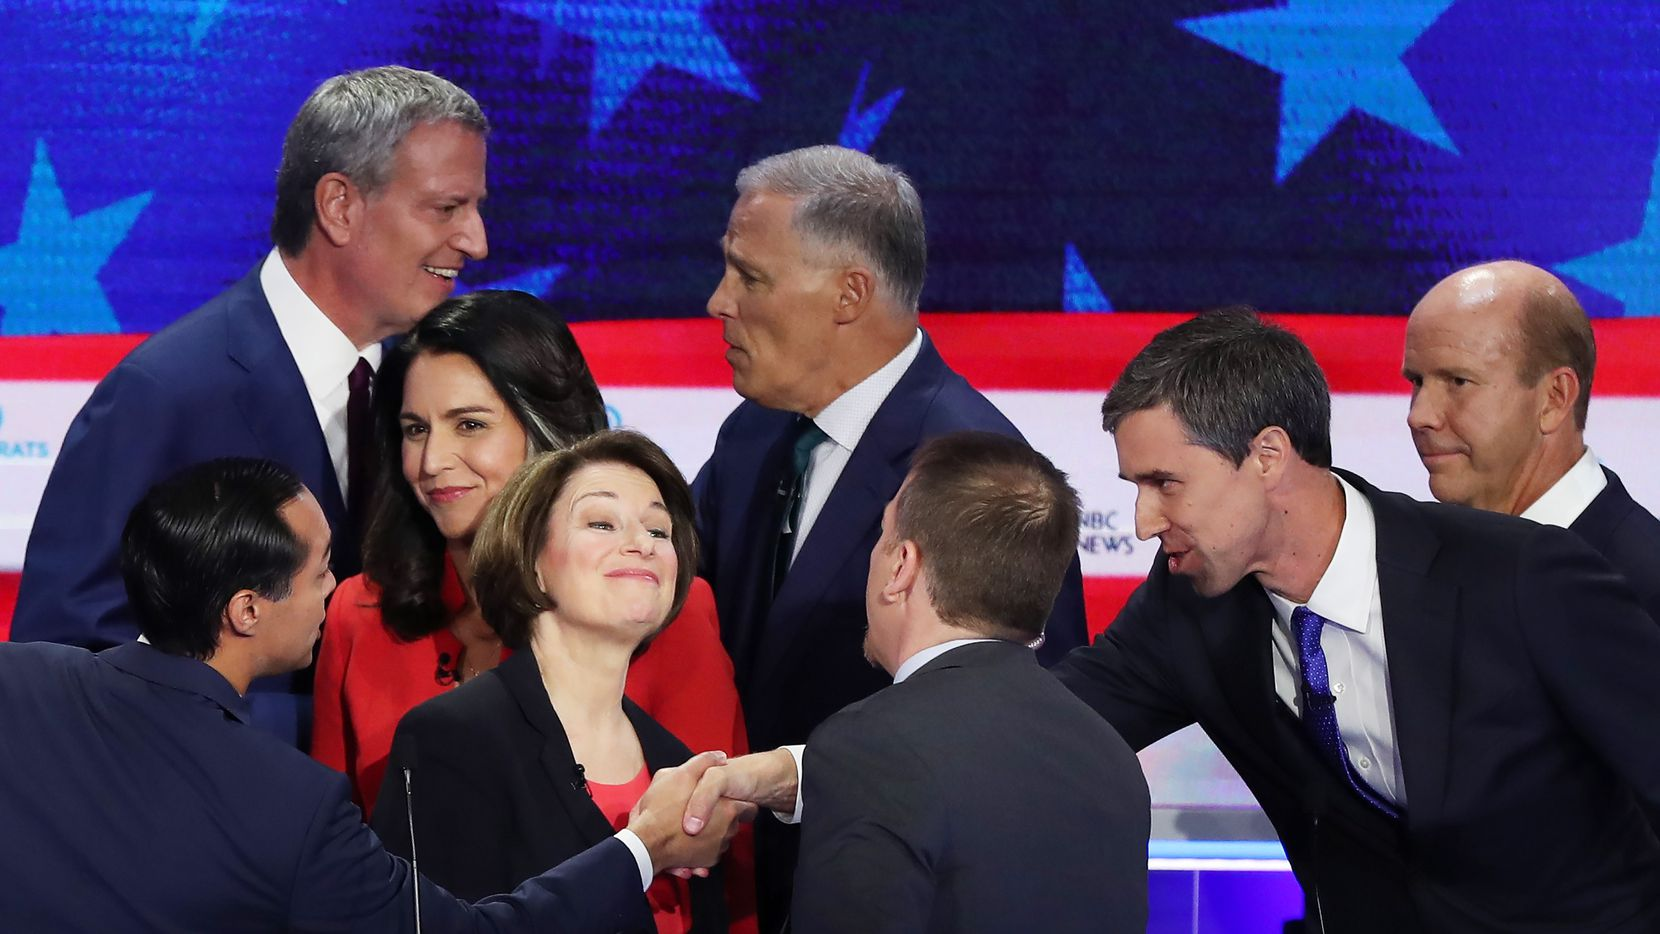 Former U.S. housing secretary Julian Castro (far left) and former Texas congressman Beto O'Rourke (2nd from right) reach to shake hands after the first night of the Democratic presidential debate on June 26, 2019 in Miami,